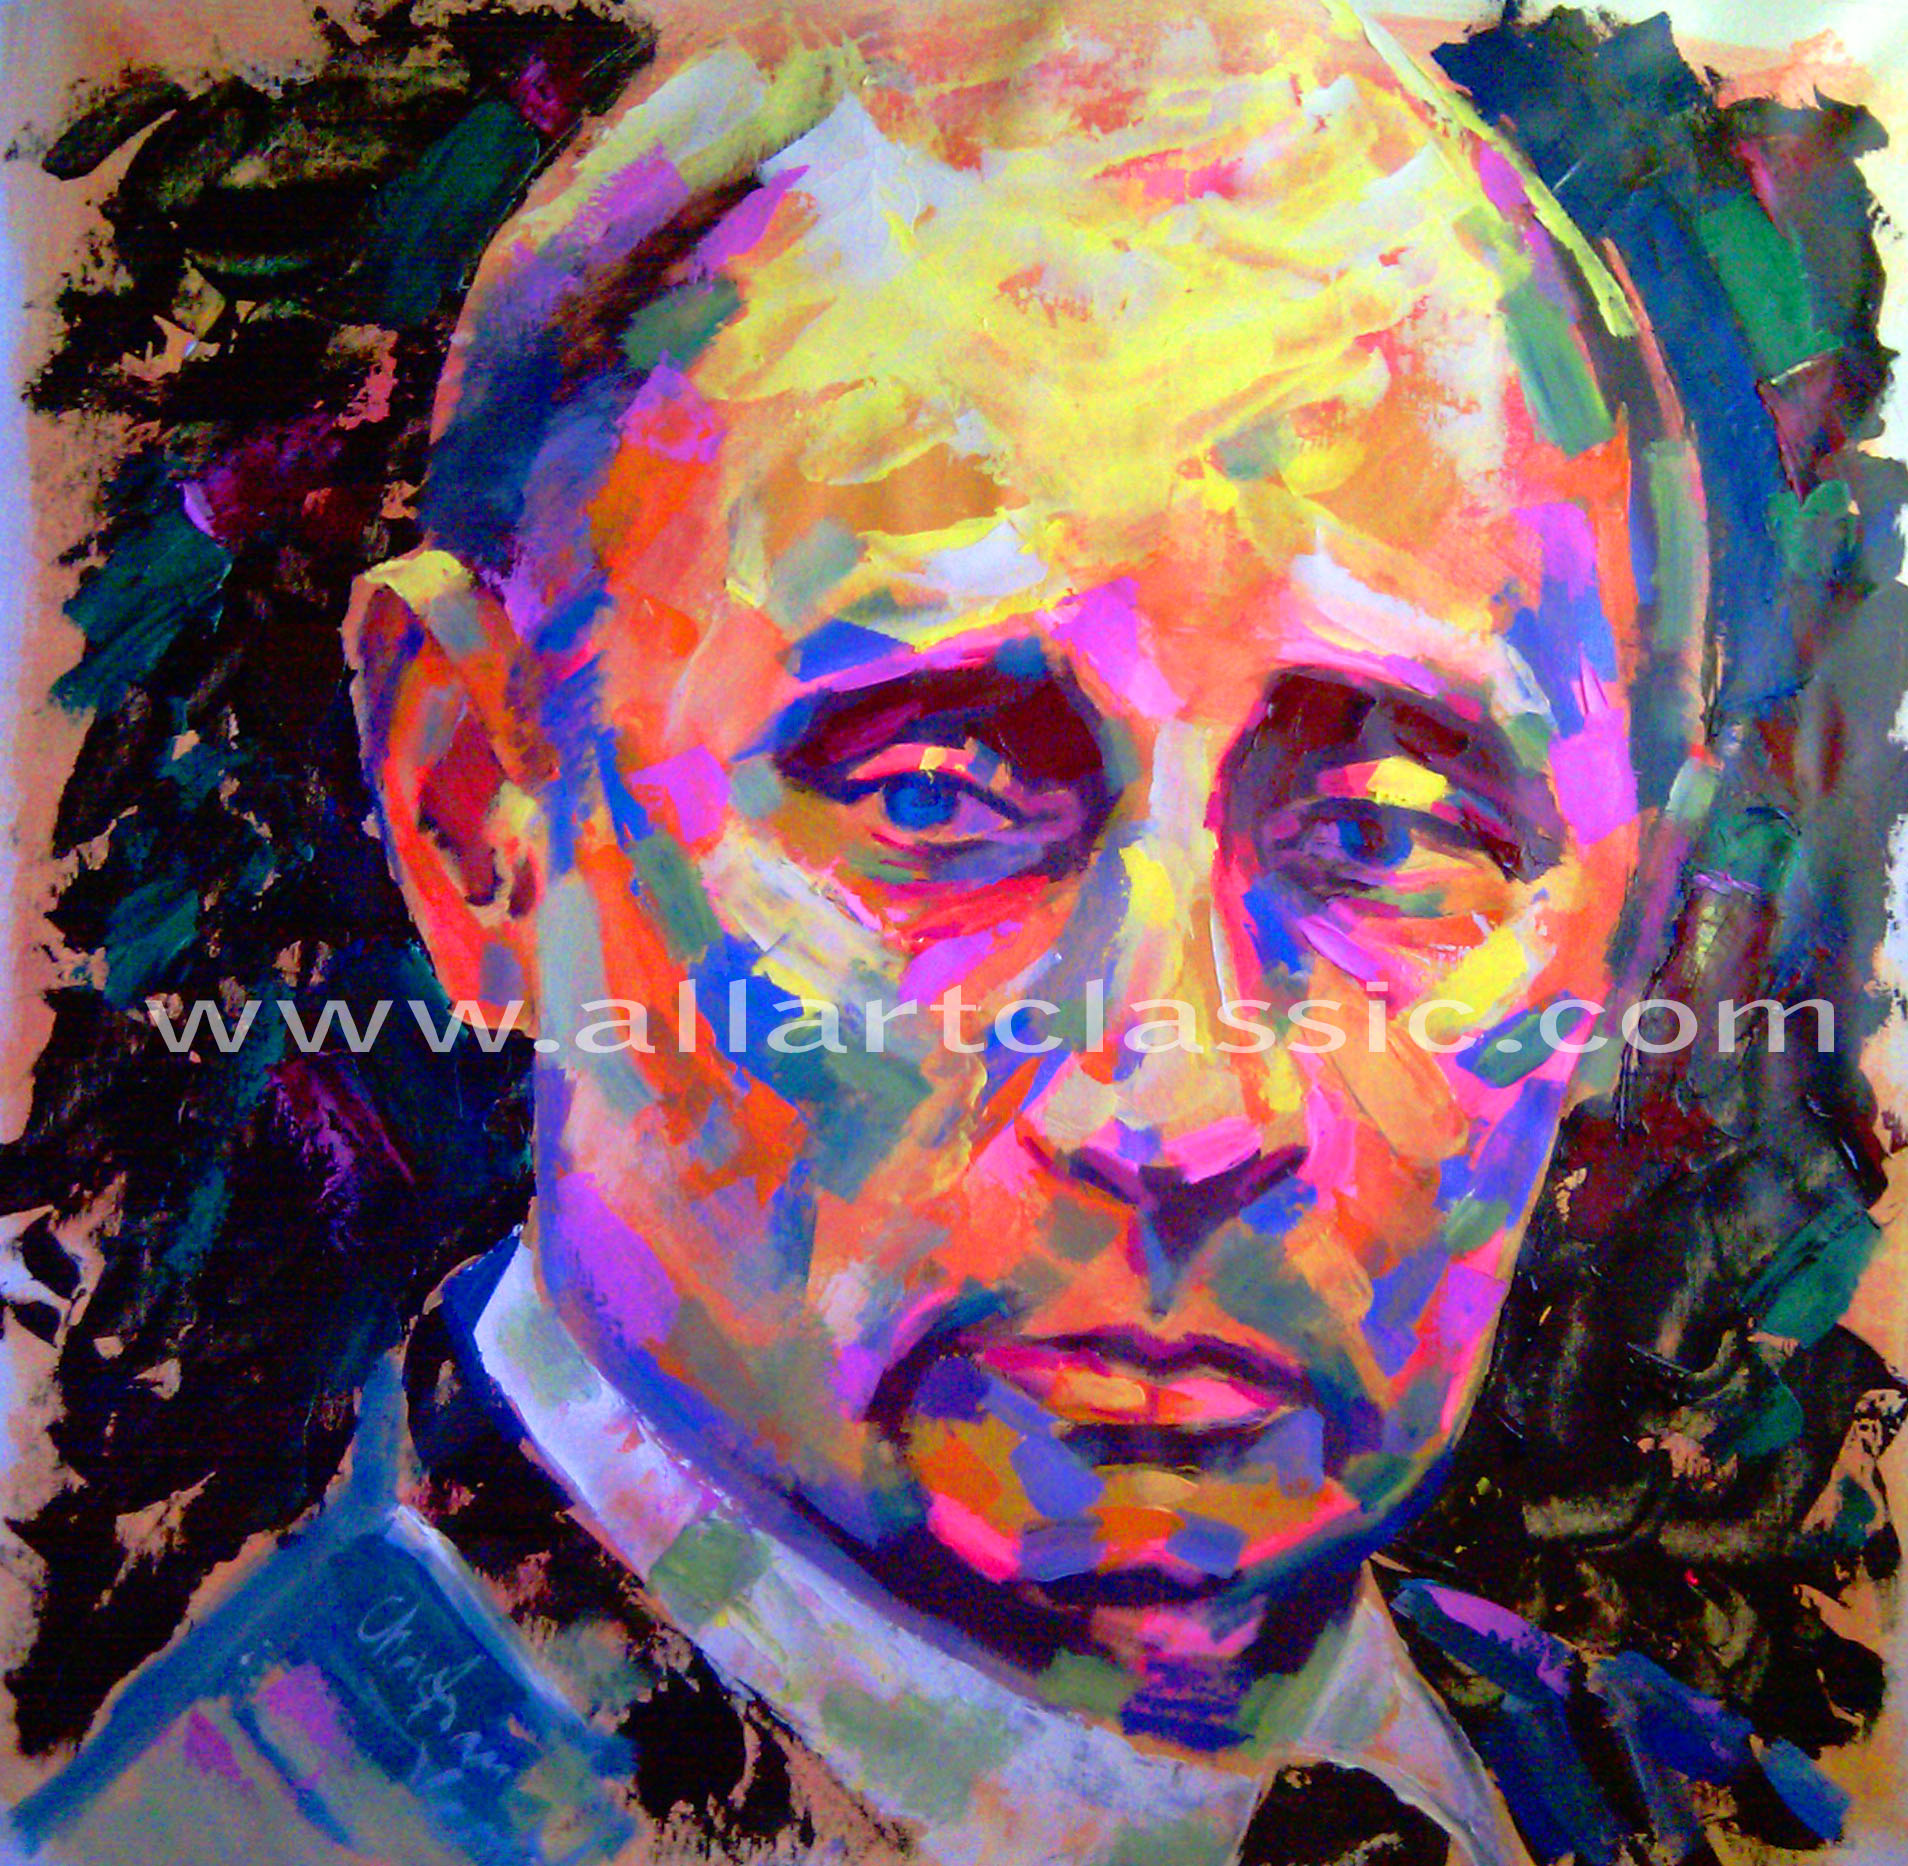 Original Oil Painting - Portrait of Vladimir Putin